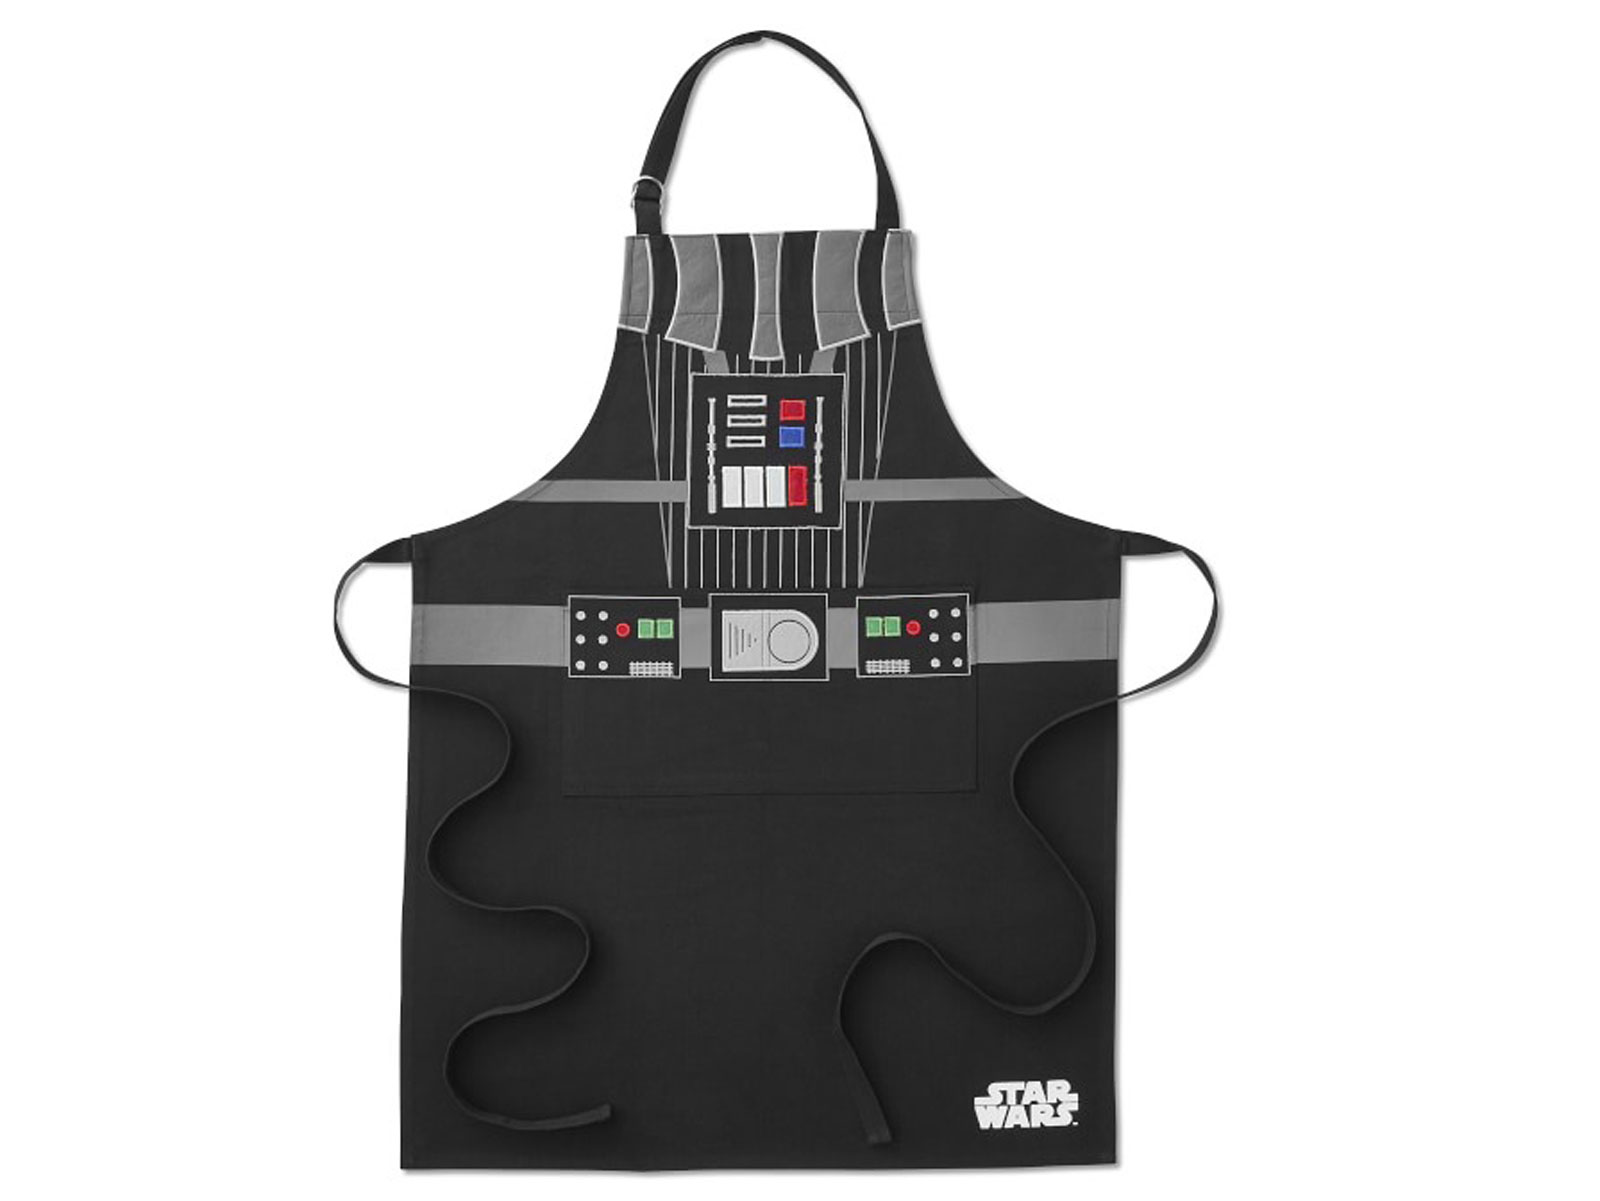 Star Wars apron